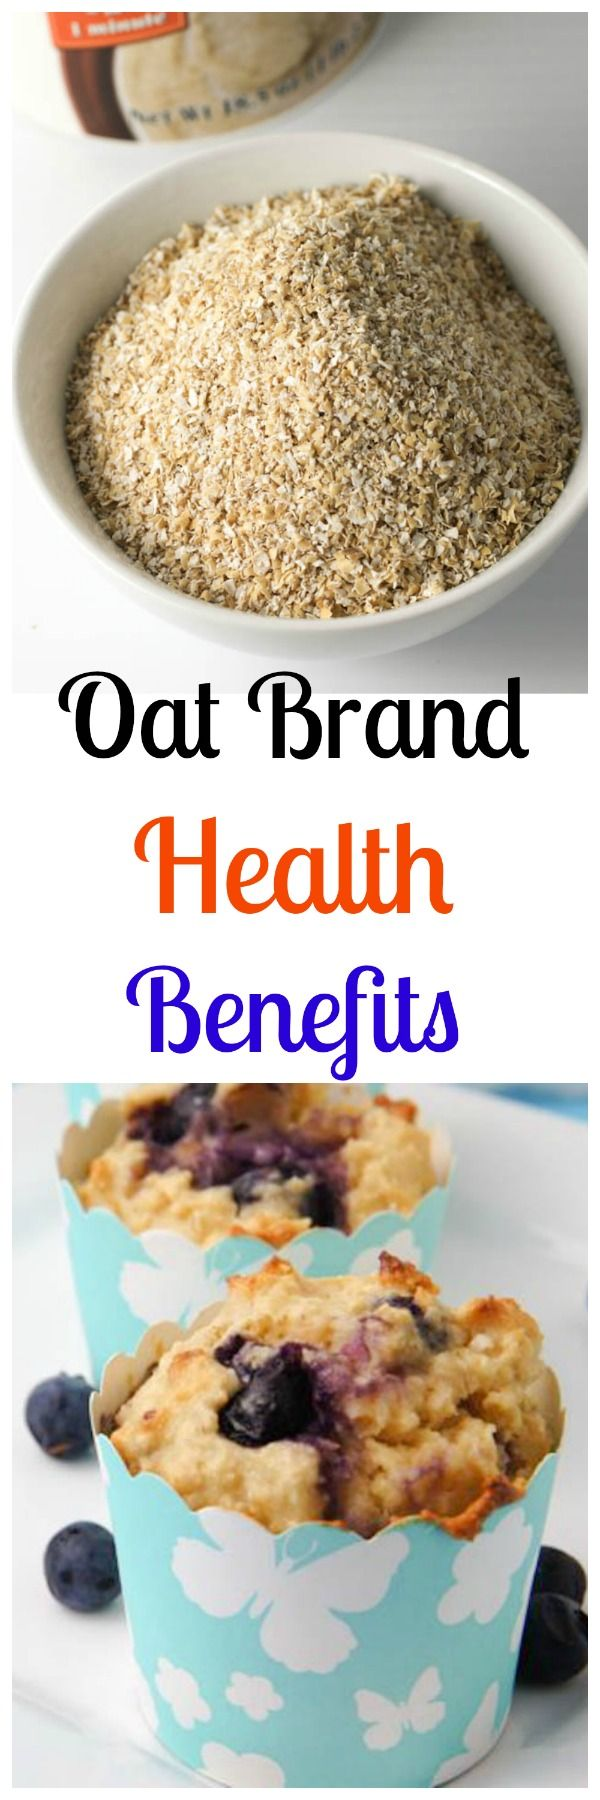 Oat Bran - Health Benefits. Oat bran can be incorporated in our daily diet. With his health benefits, oat bran is a must.